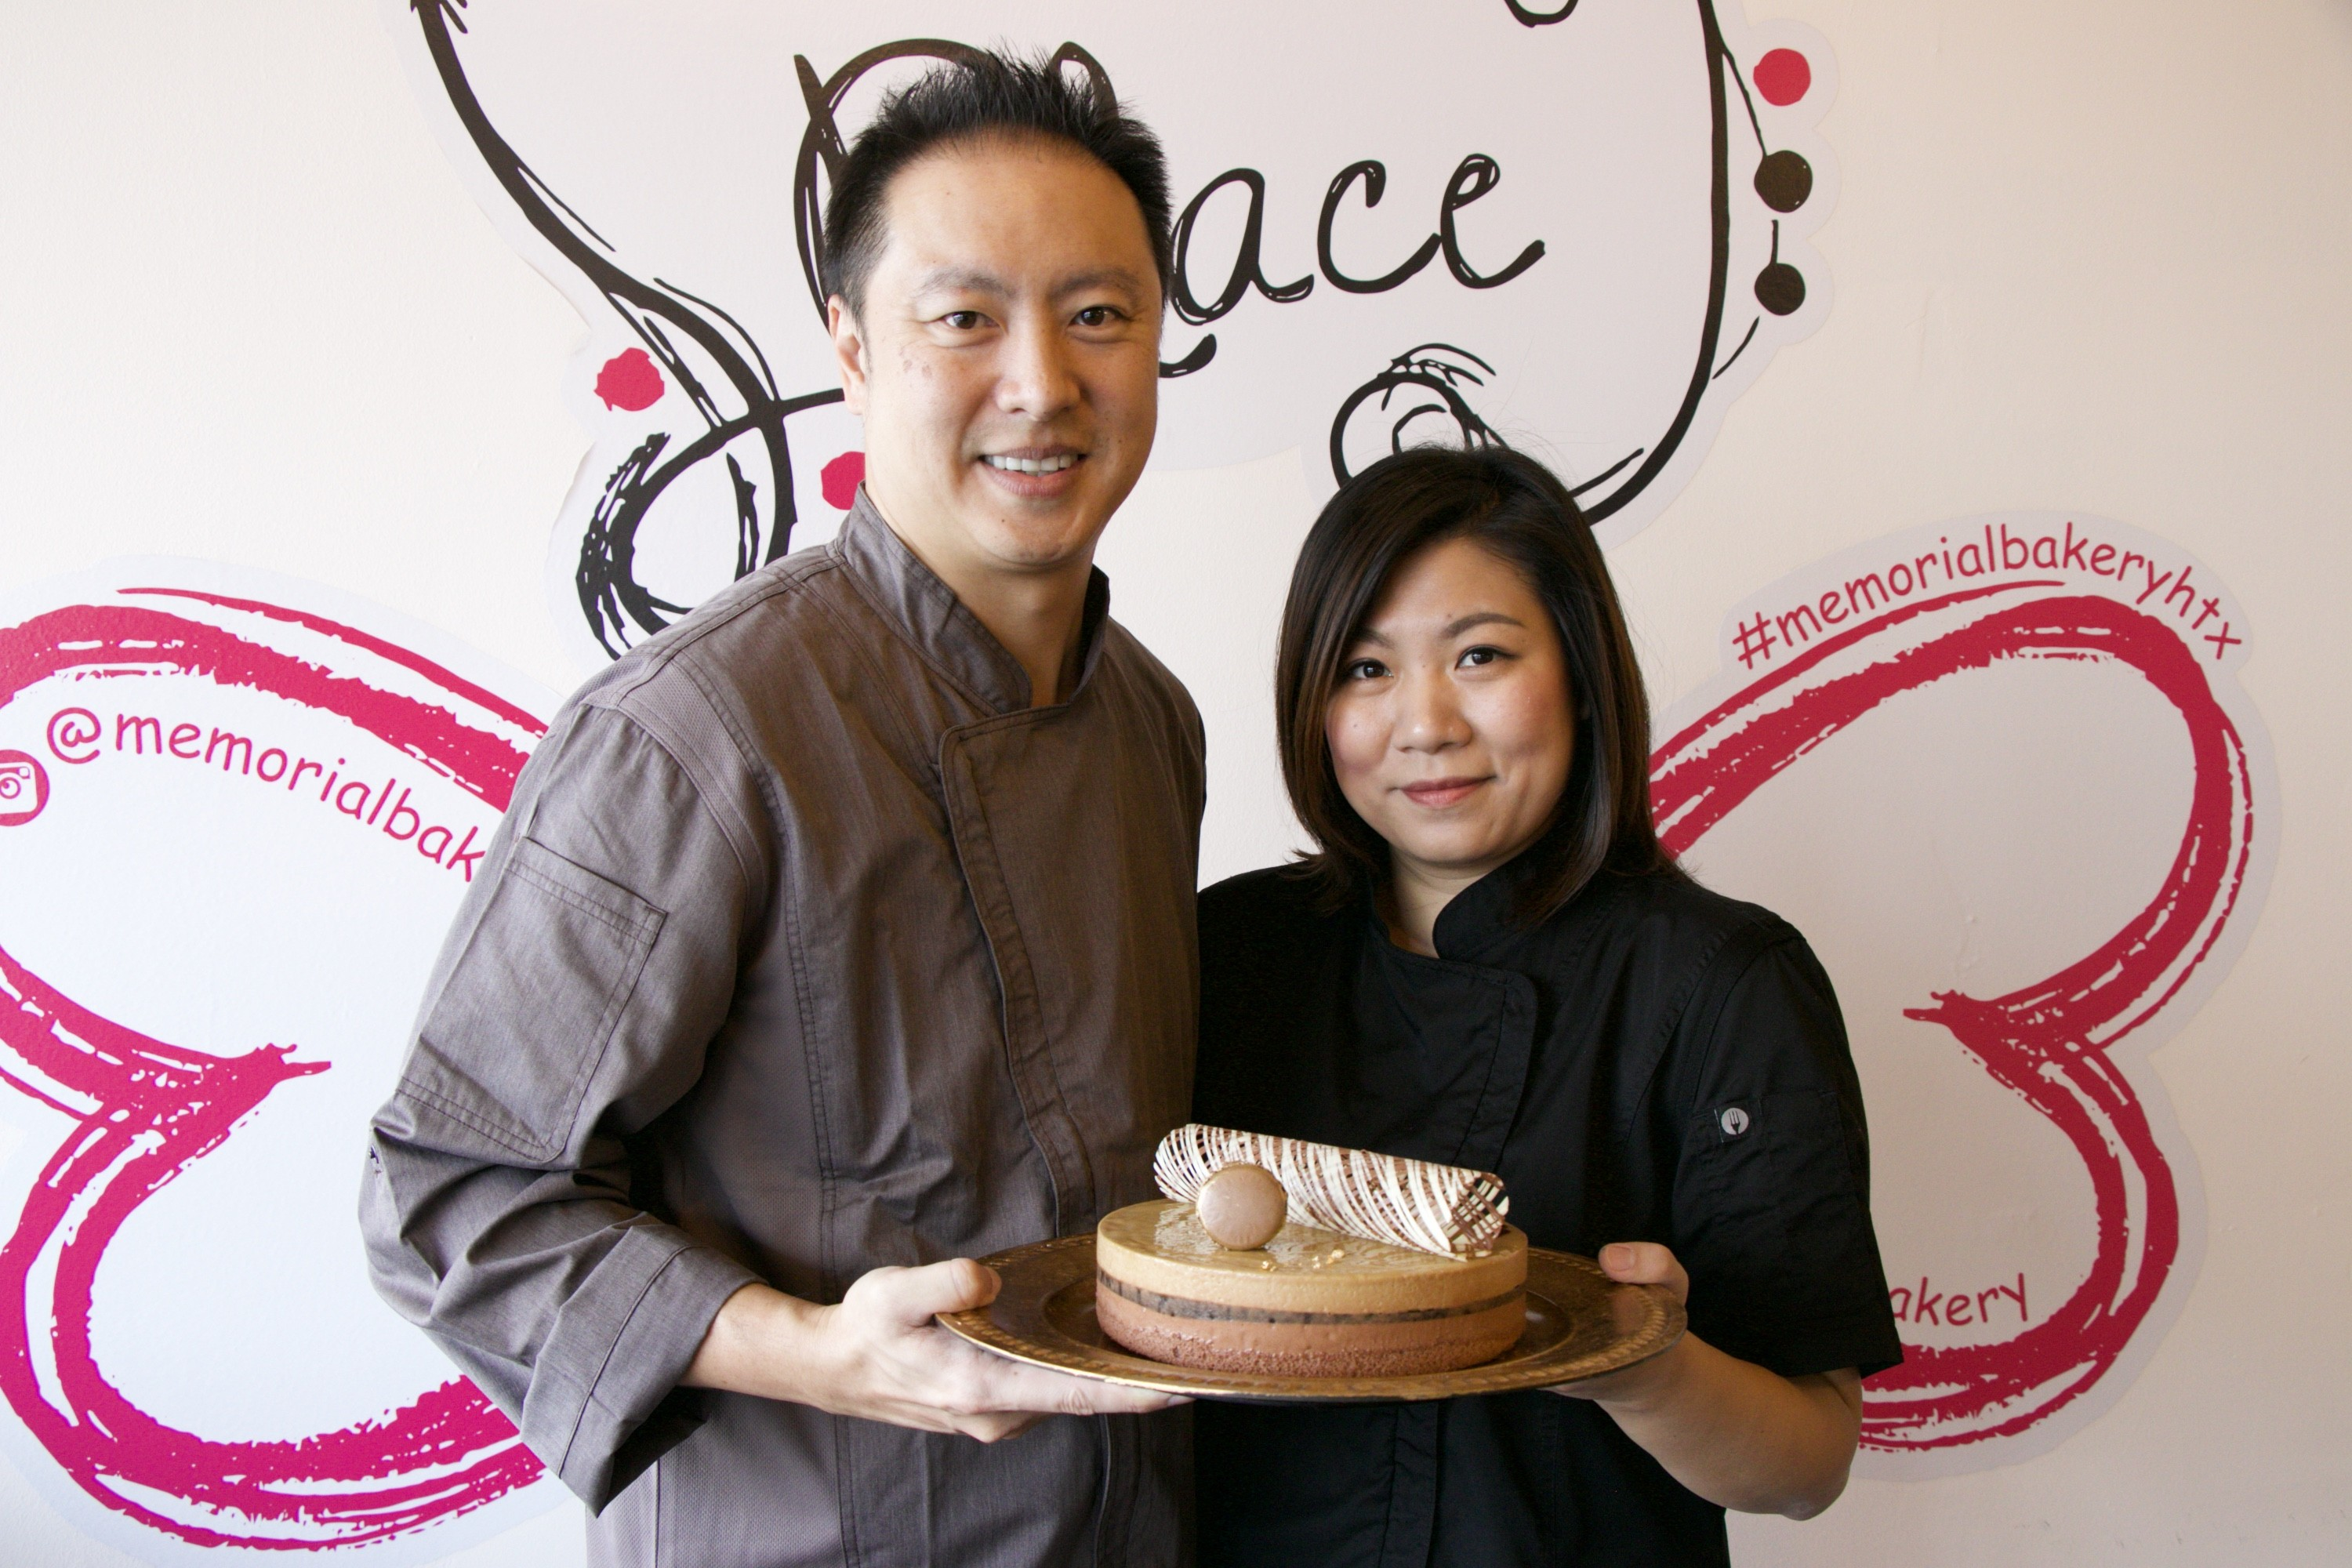 Richard and Rachel Lin of Memorial Bakery